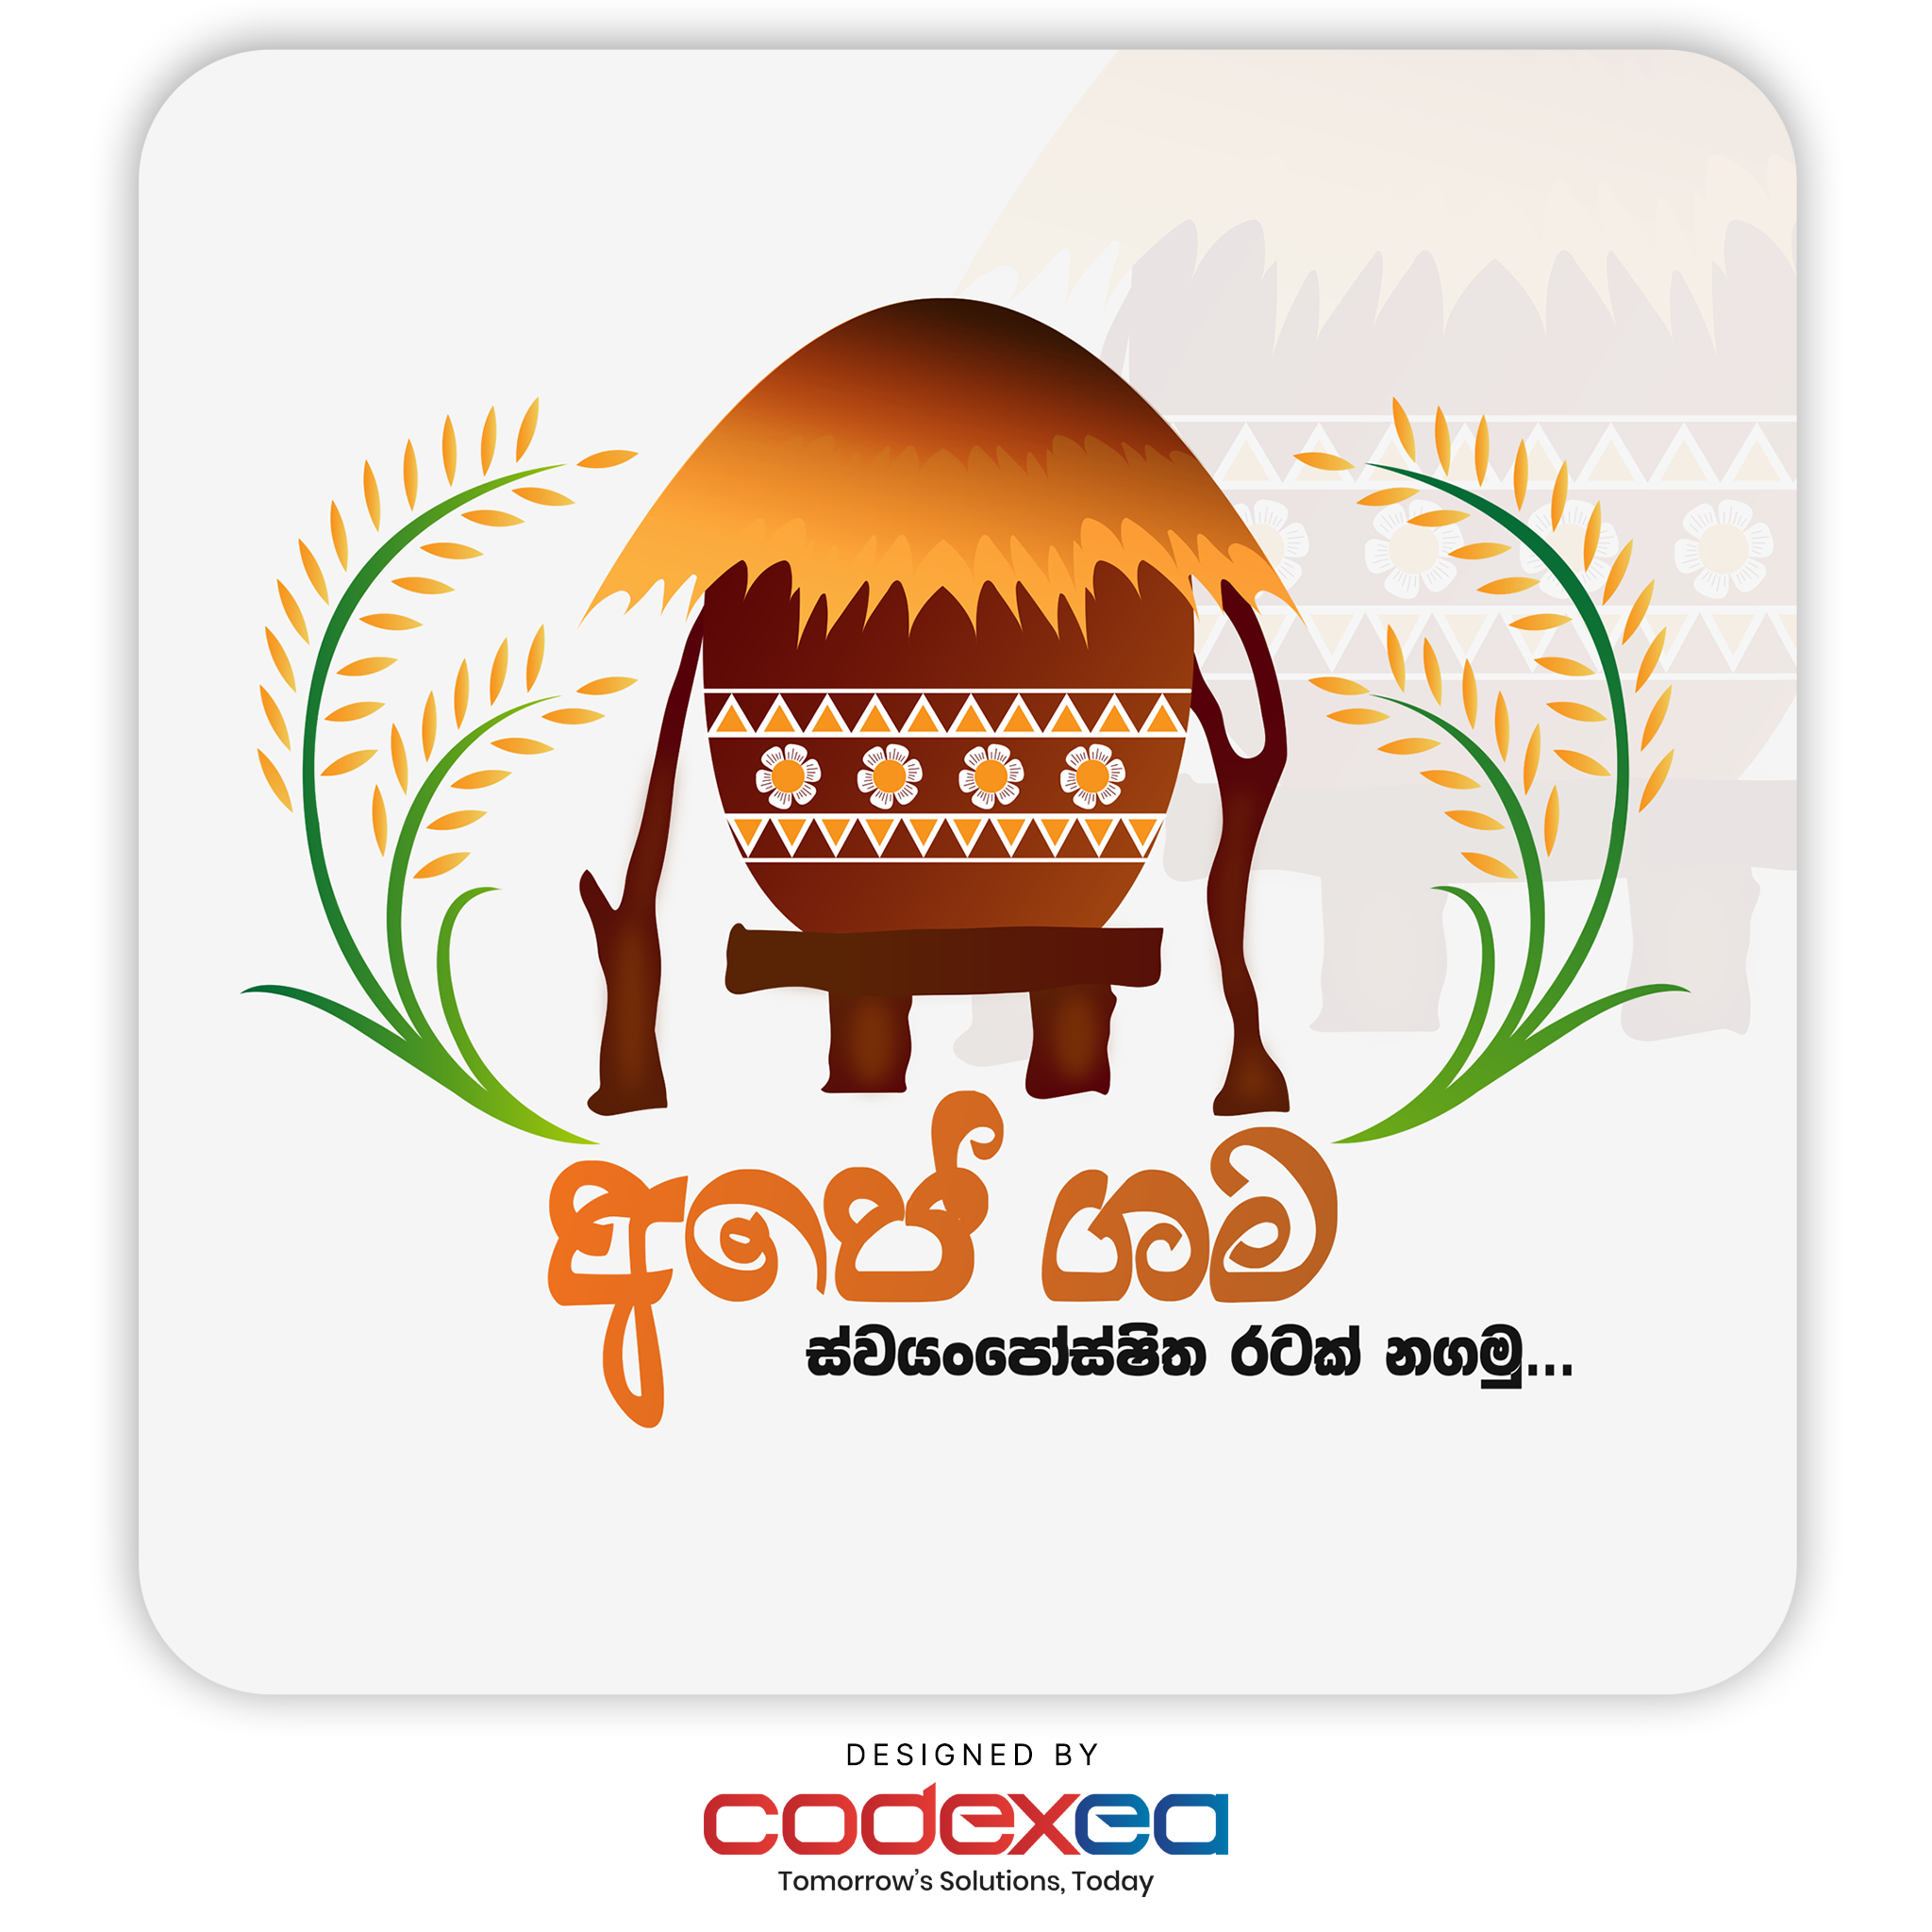 Codexea - #1 Digital Marketing | Best Web Design | Sri Lanka